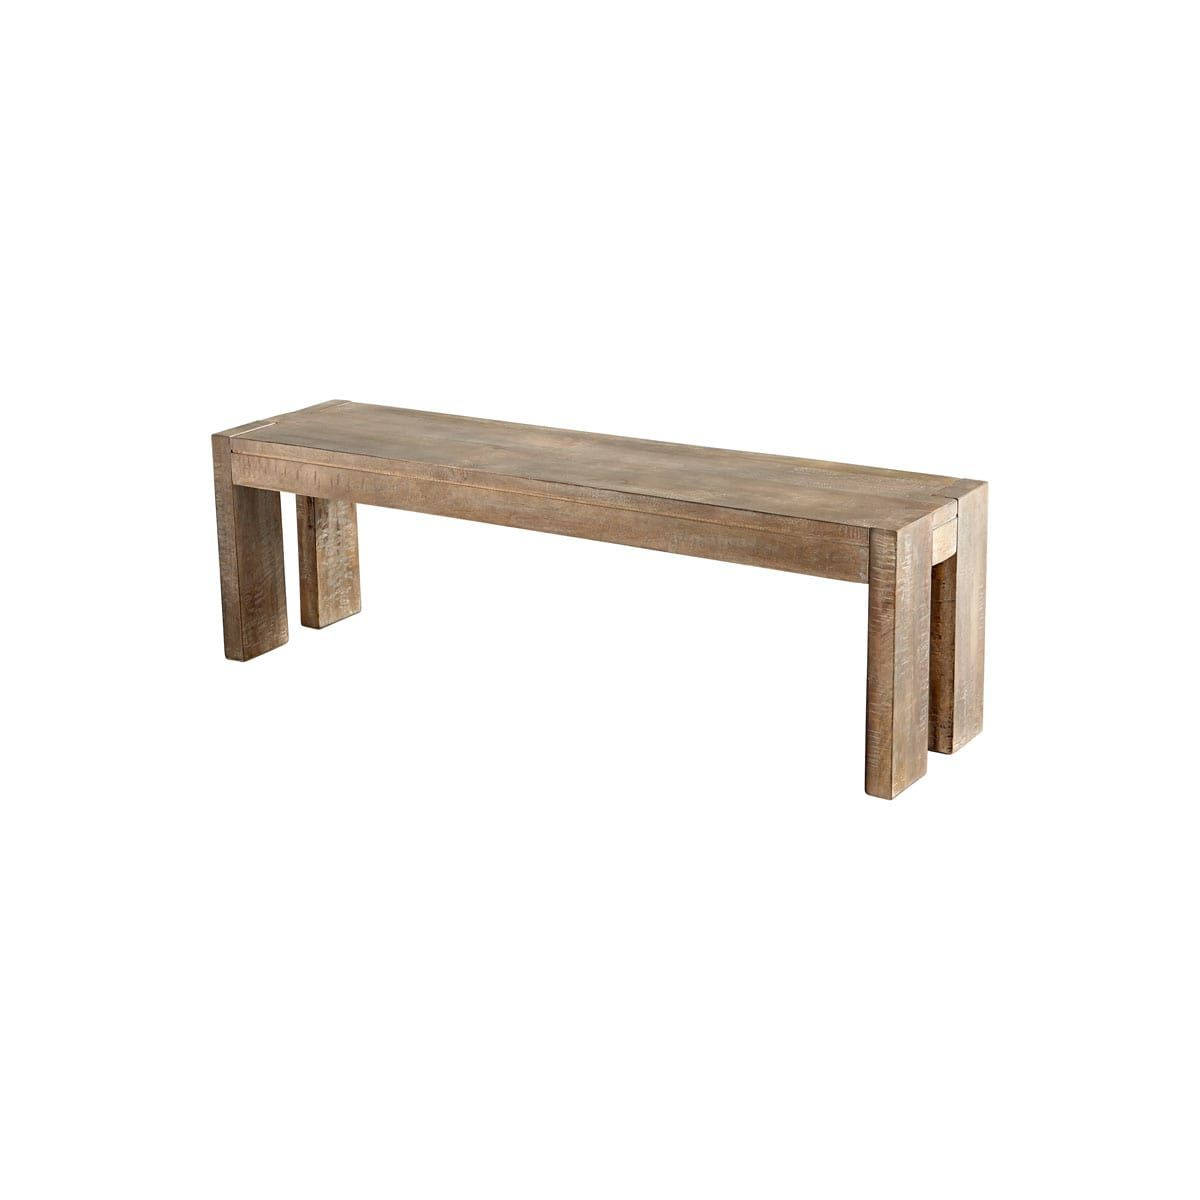 Cyan Design Segvoia Bench Cyan Design Wood Bench Built In Bench